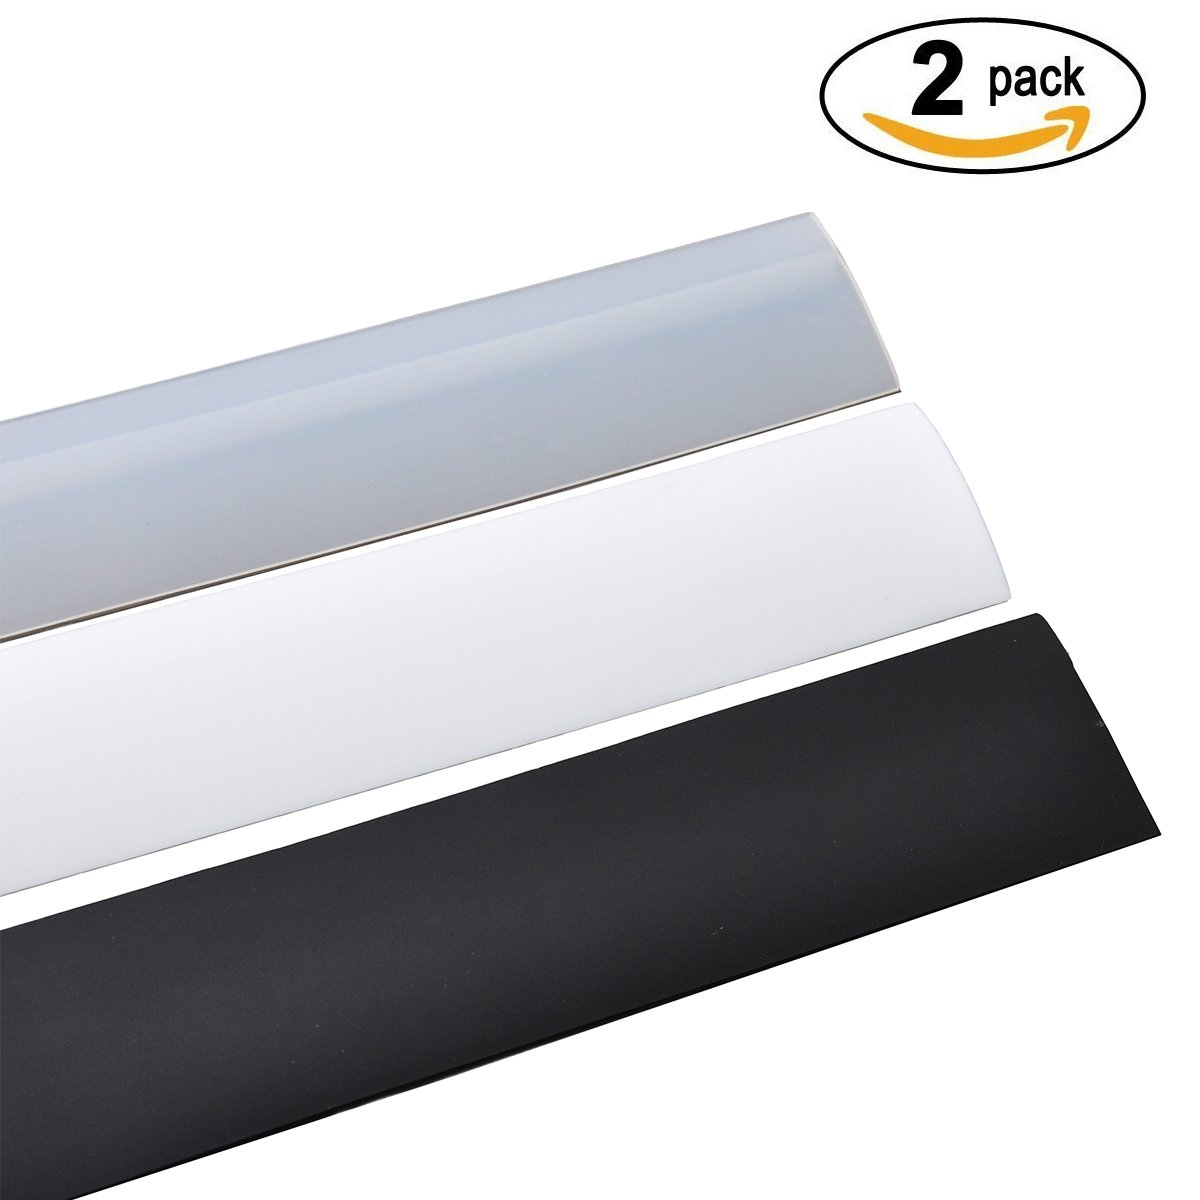 Premium Counter Gap Cover Set By Penacio - 2 Silicone Oven Gap Spacers - Suitable For Kitchen Counters & Appliances - Heavy Duty & Heat Resistant - BPA Free & FDA Approved (Clear)